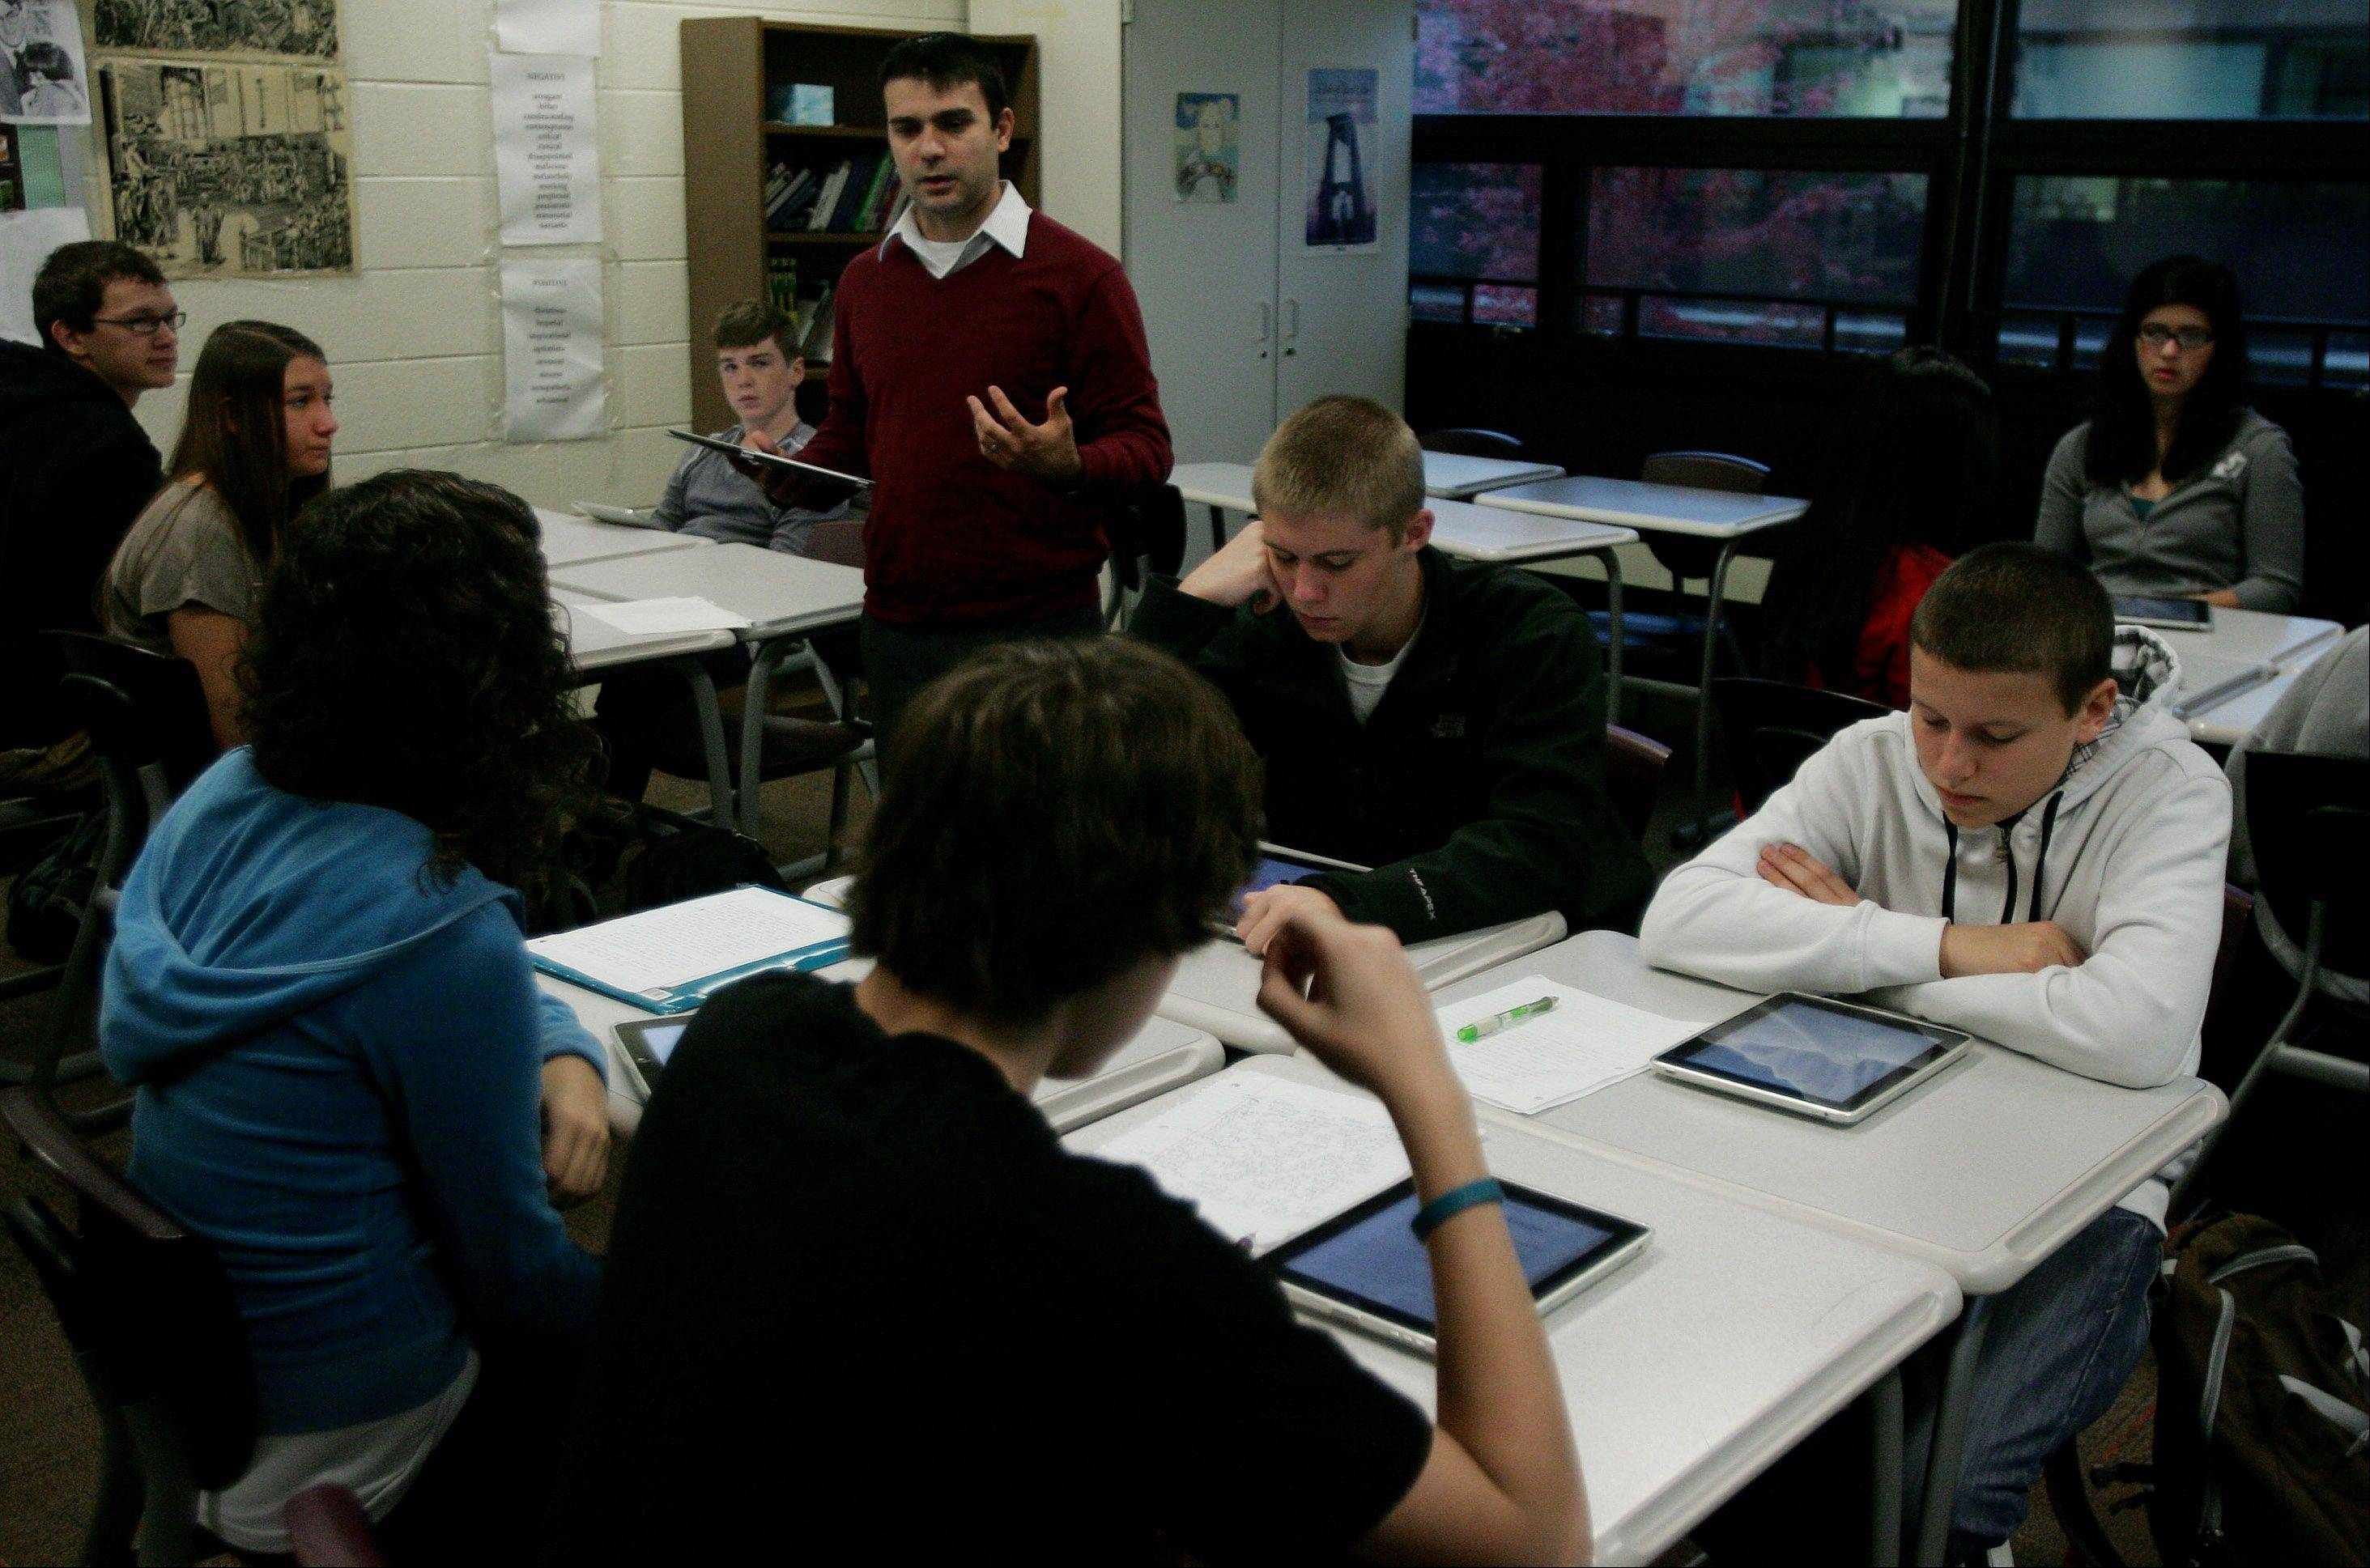 Sophomore English teacher Joseph Geocaris talks while students use iPads in a Stevenson High School class that includes special education students and regular students.